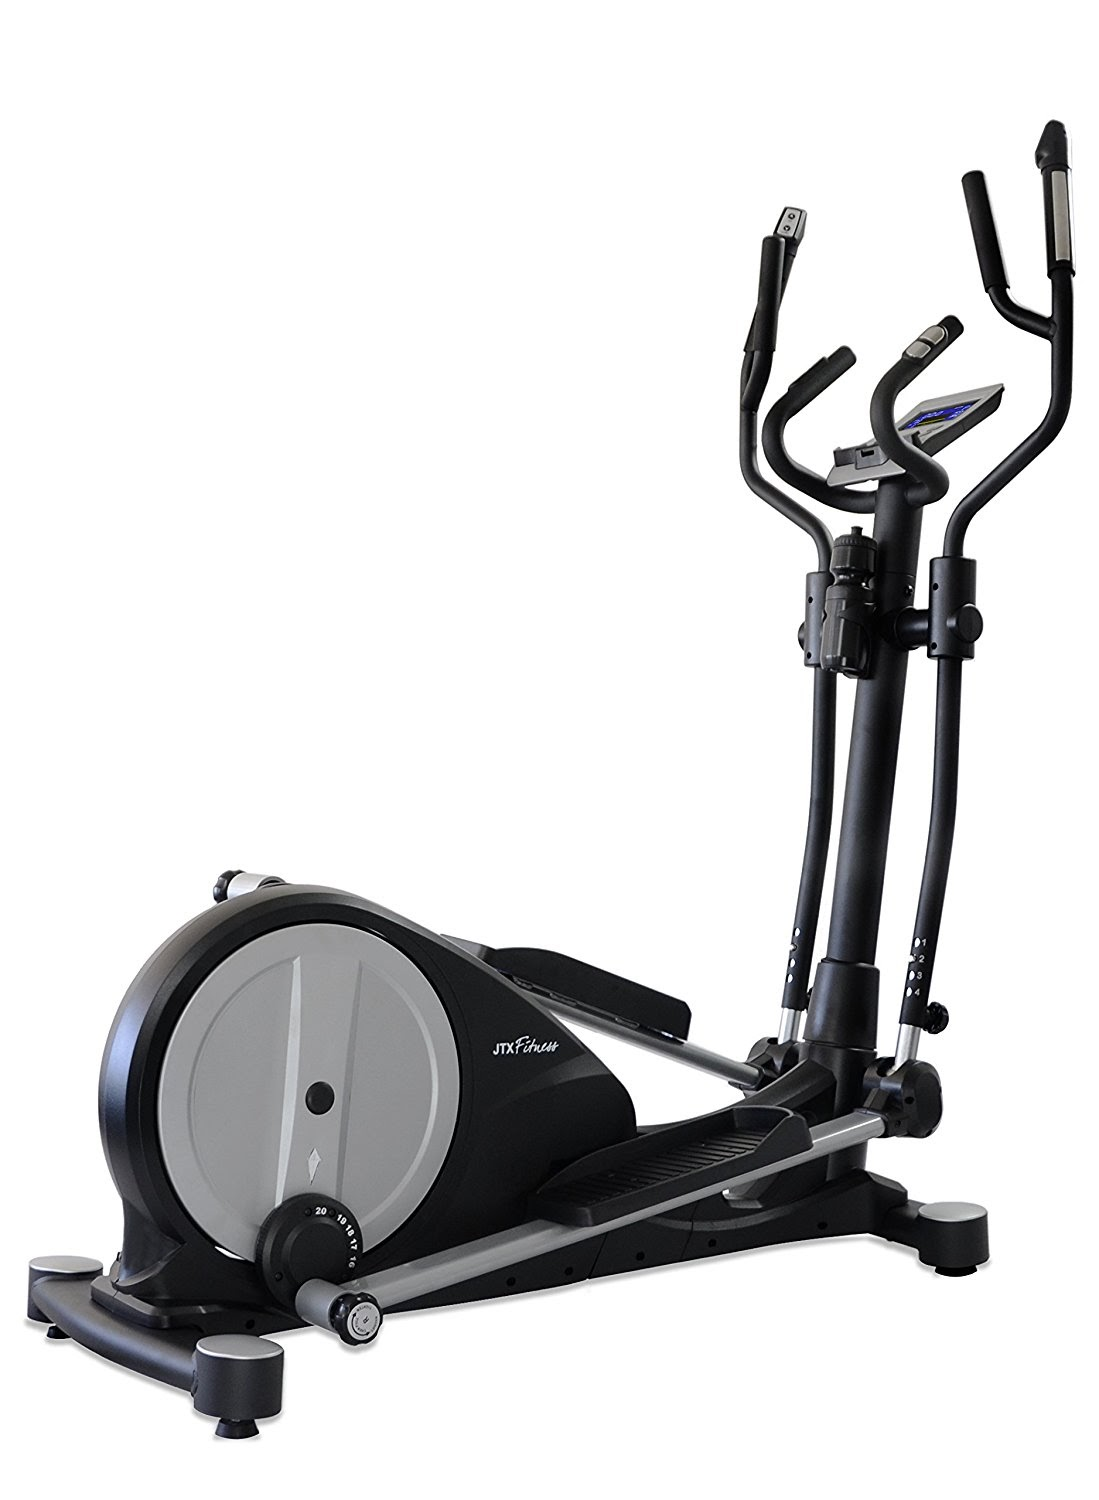 Watch 7 Effective Benefits Of Elliptical Trainer Workout video